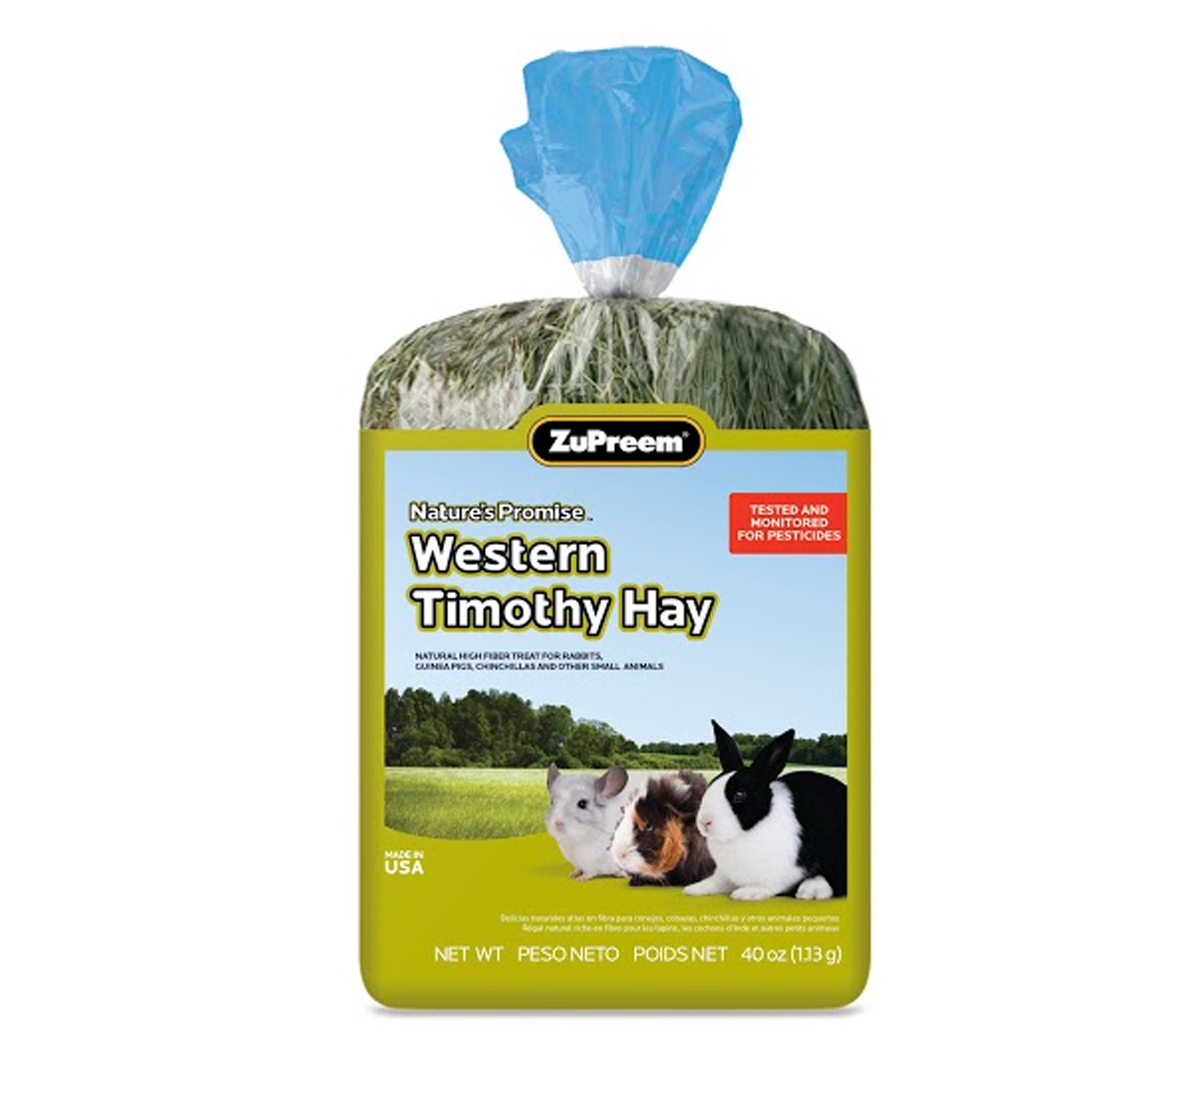 ZuPreem Natures Promise Western Timothy Hay - 397 gm